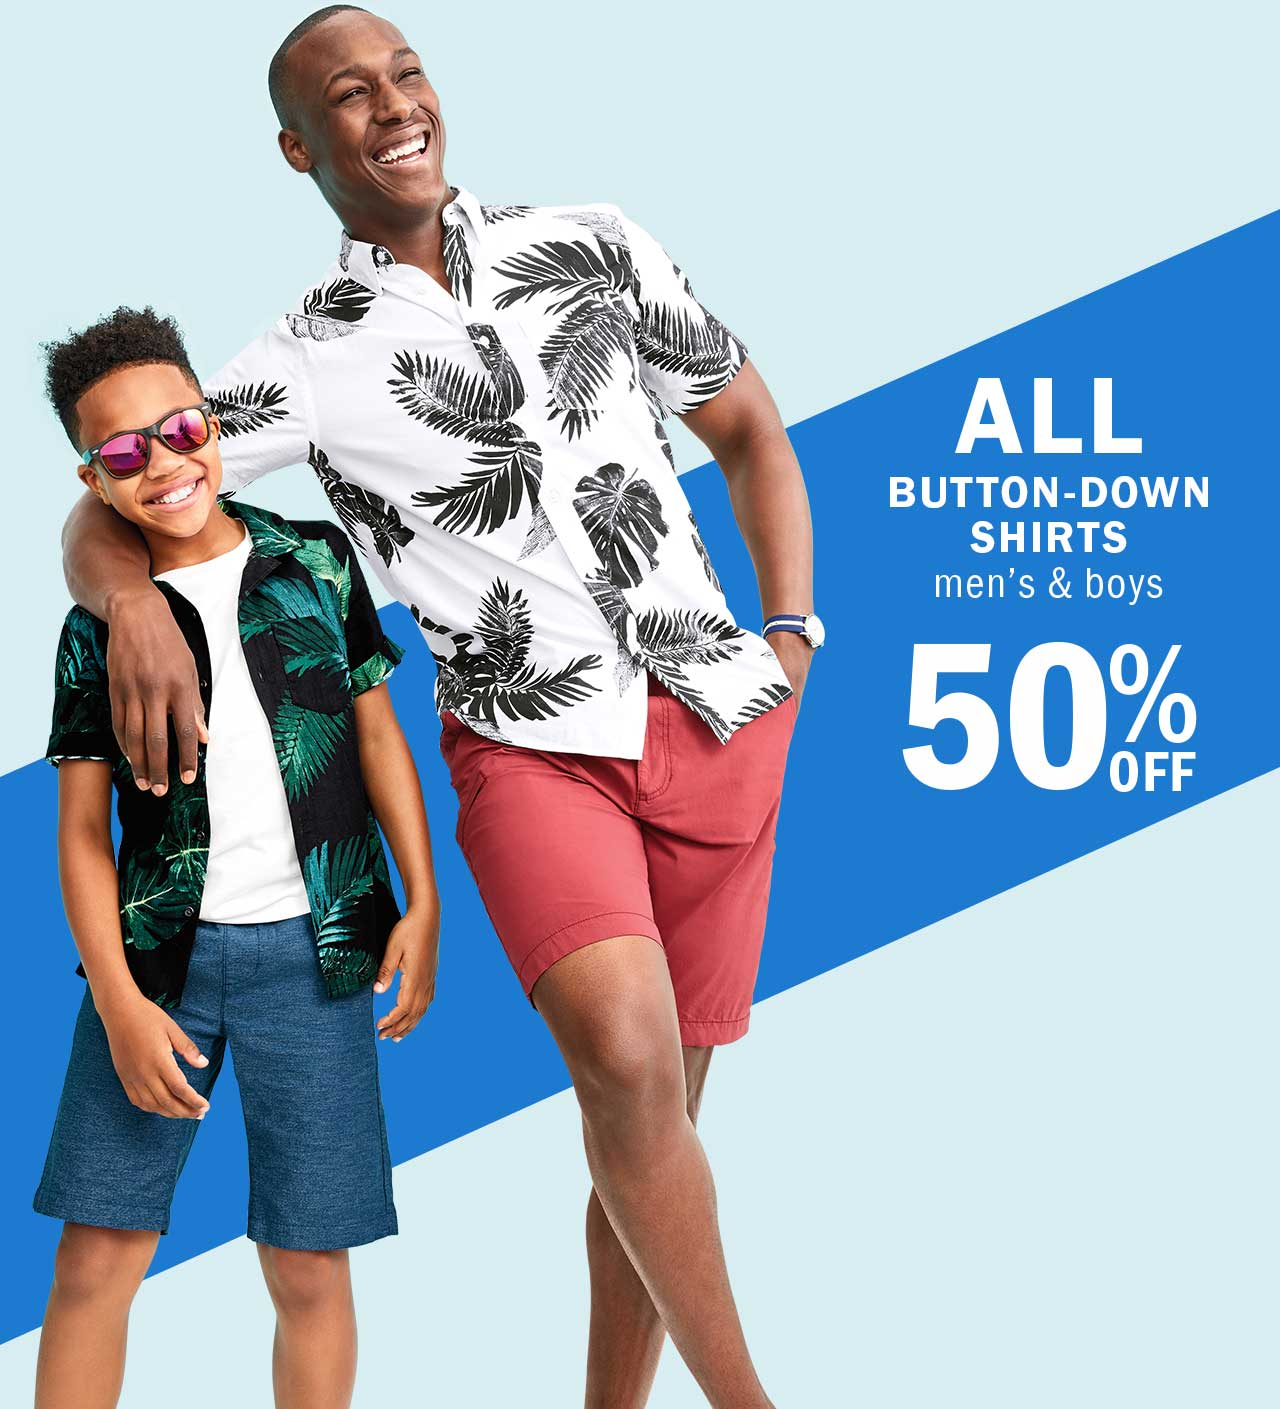 ALL BUTTON-DOWN SHIRTS men's & boys 50% OFF